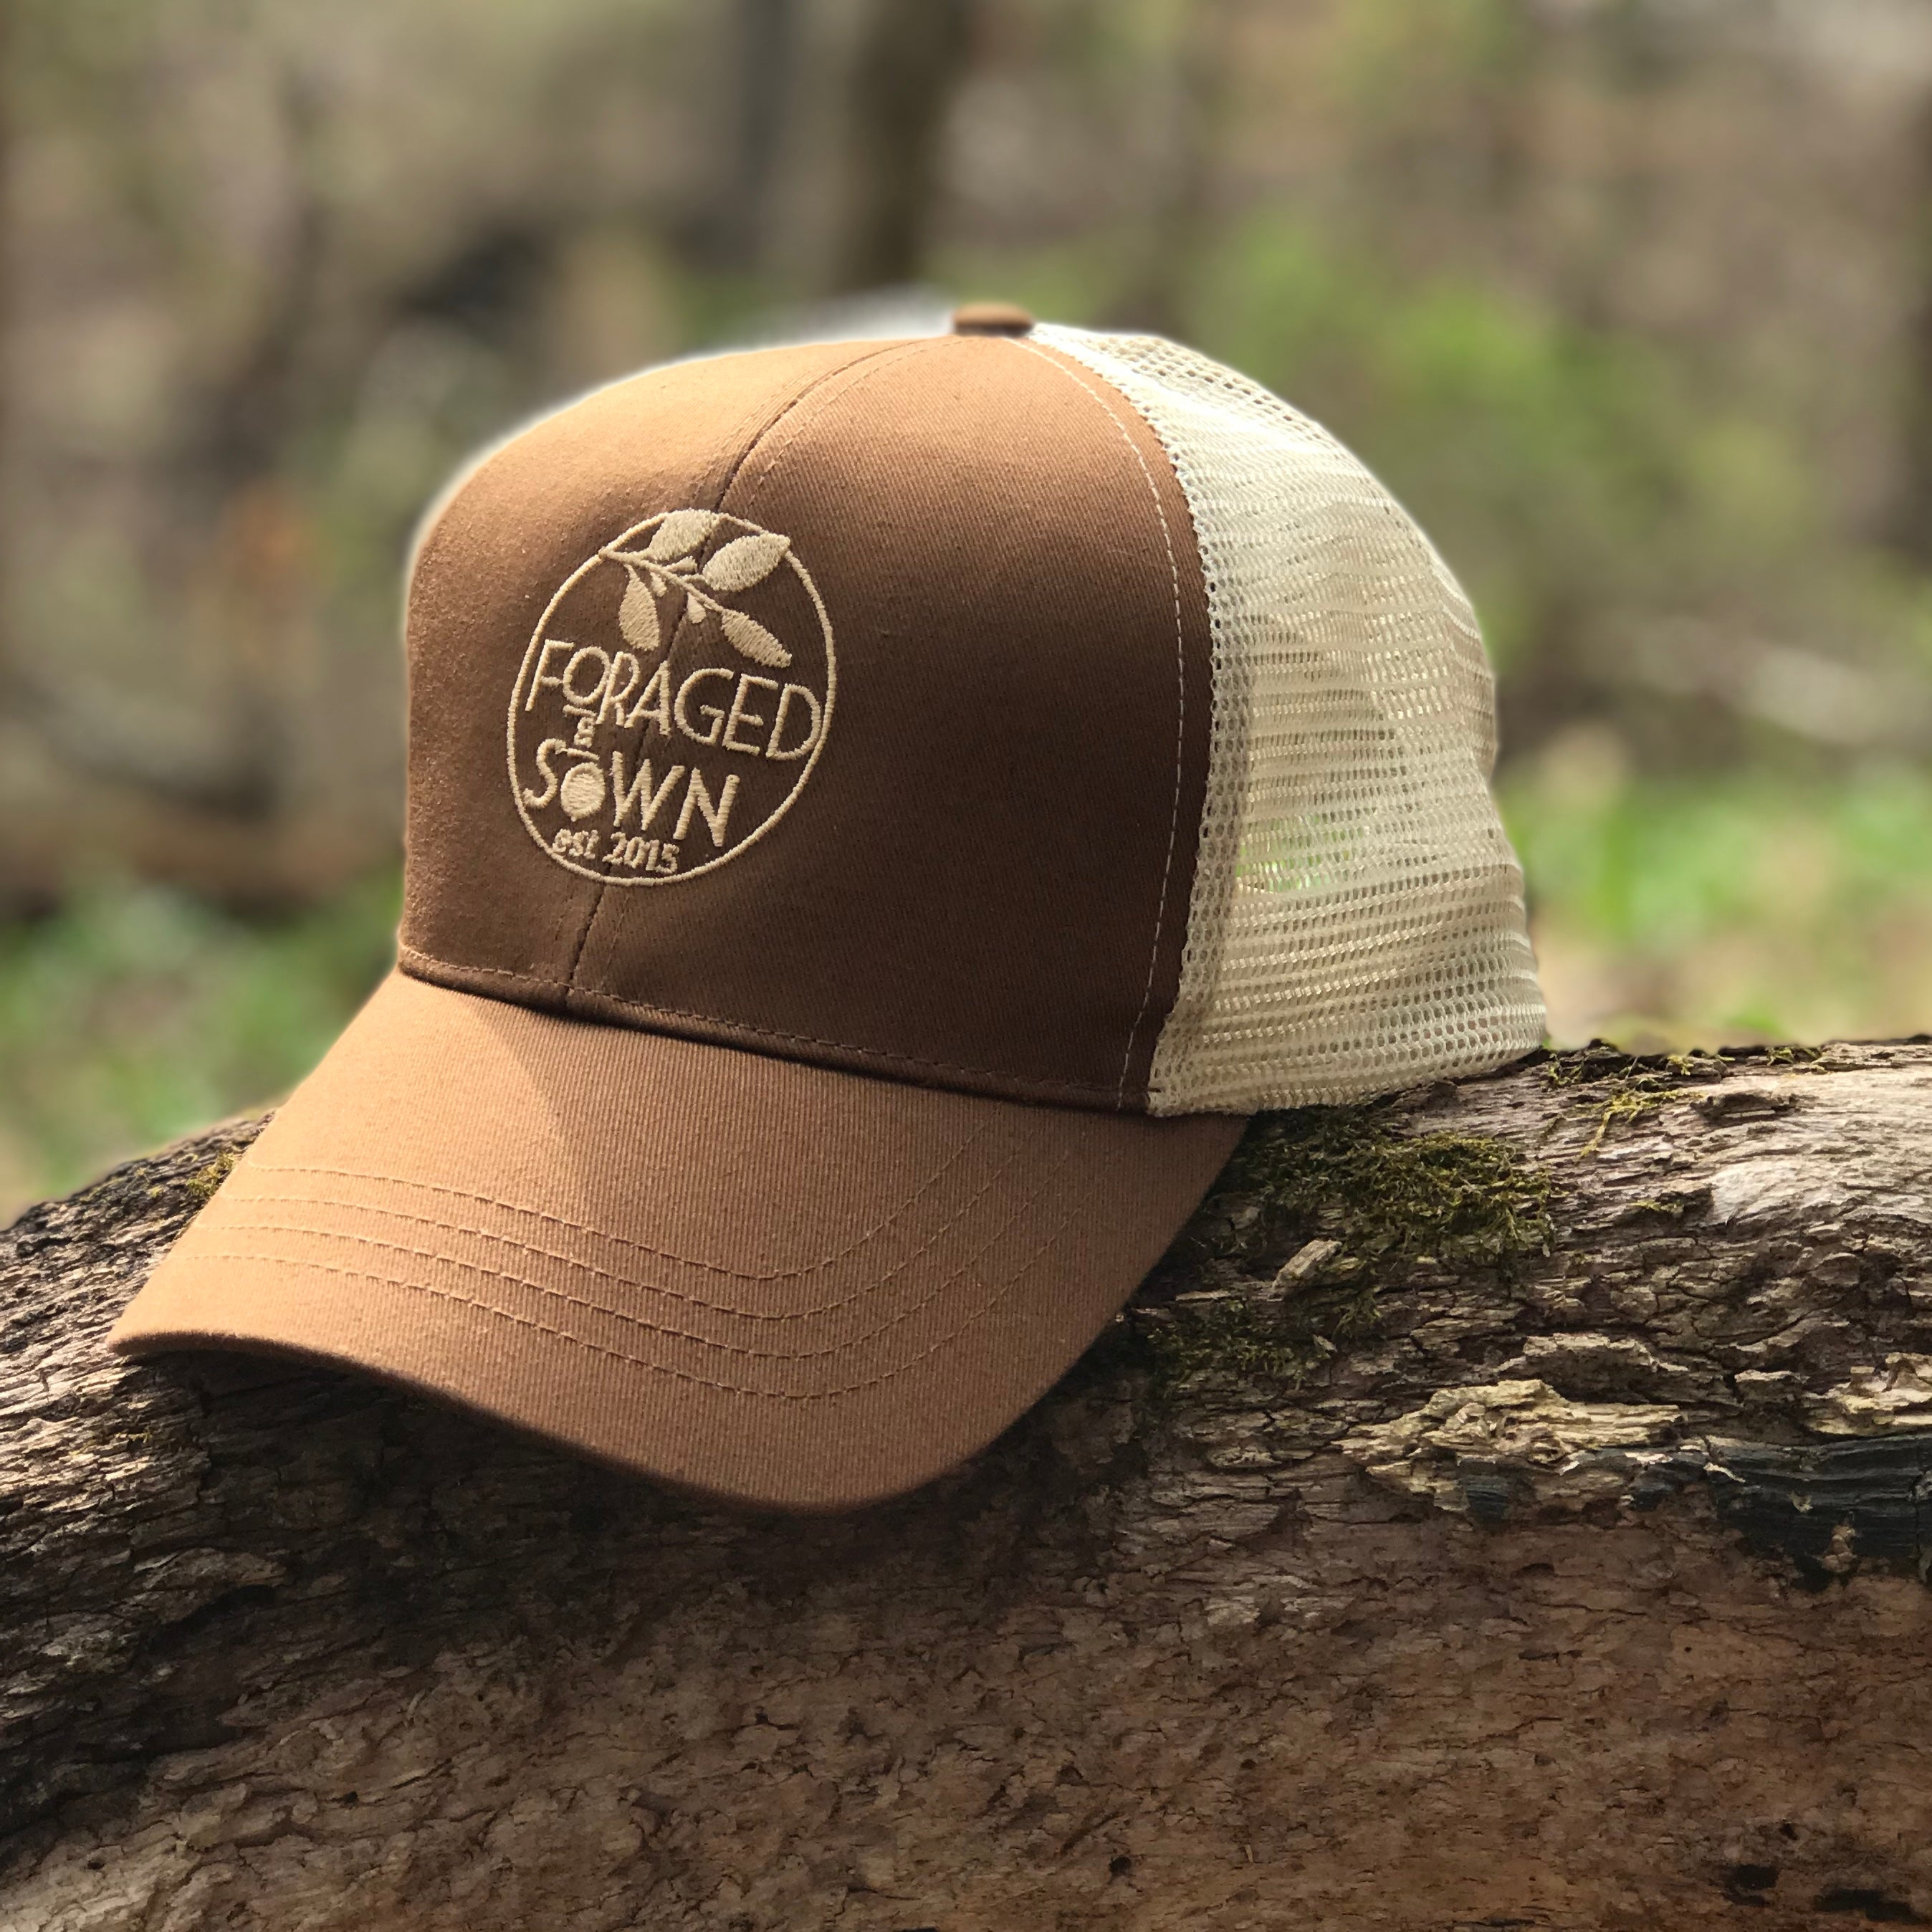 Foraged & Sown Trucker Hat